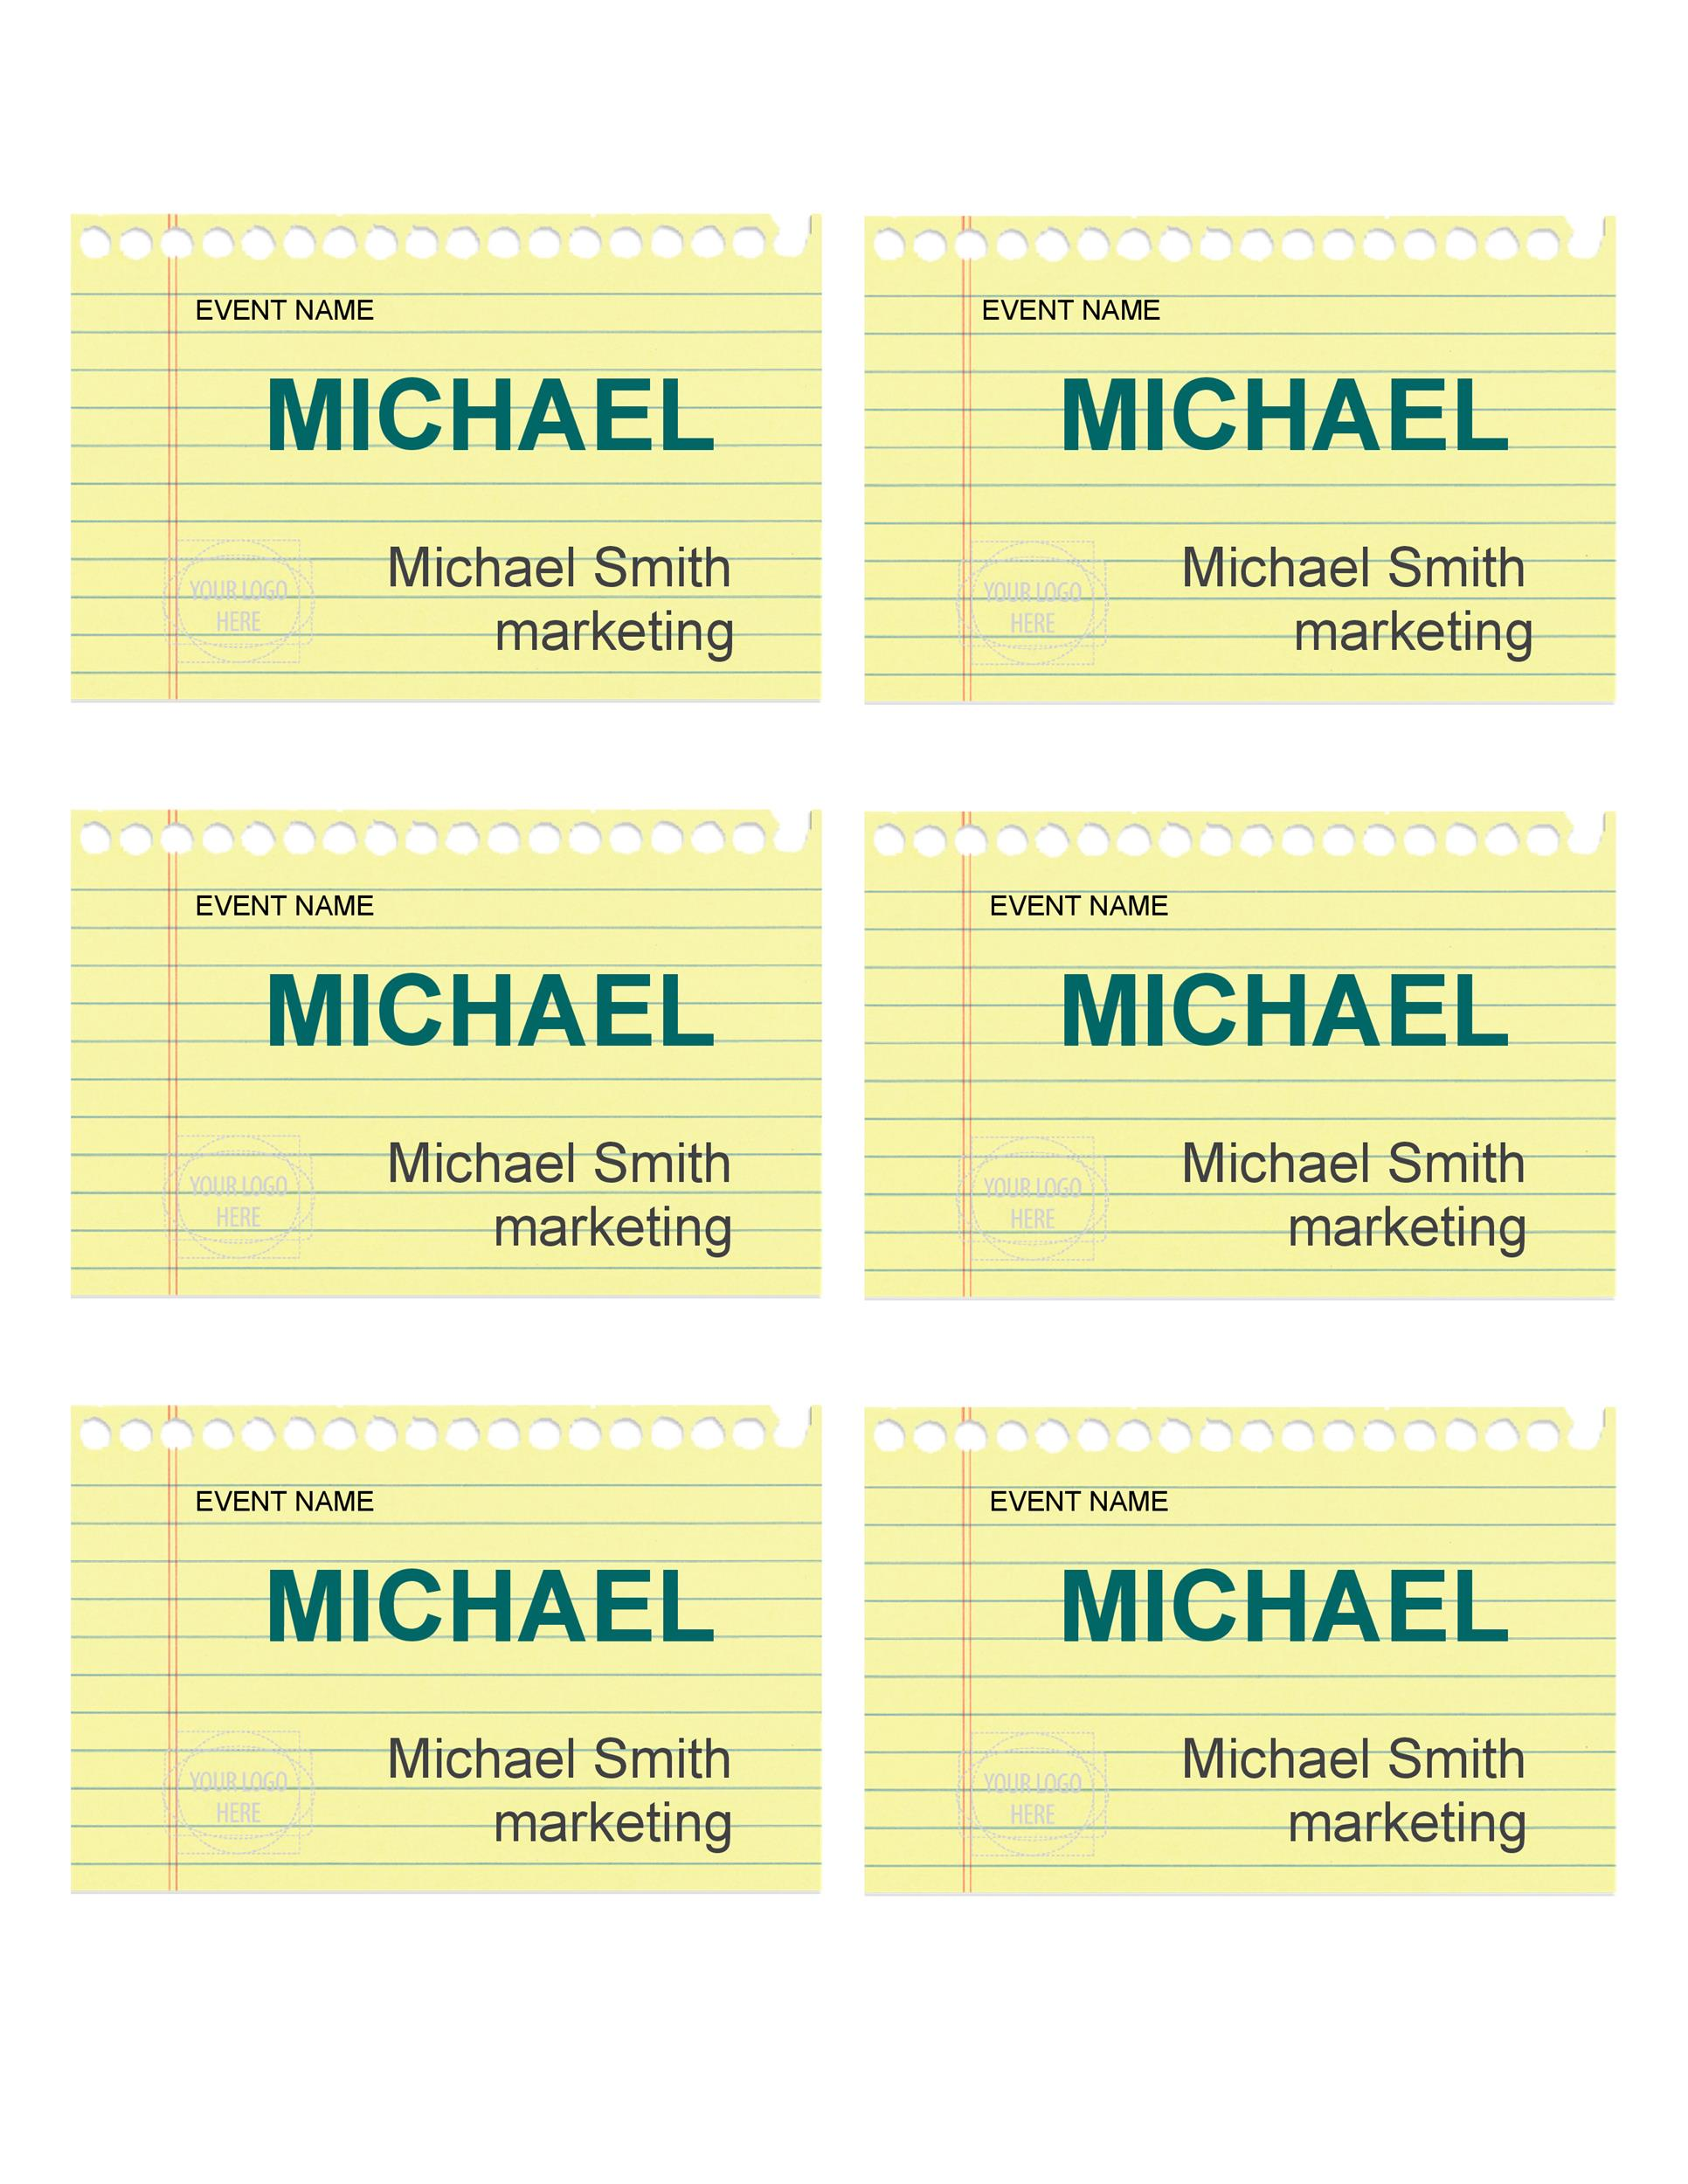 picture relating to Dunder Mifflin Name Tag Printable identified as 47 Totally free Status Tag + Badge Templates ᐅ Template Lab